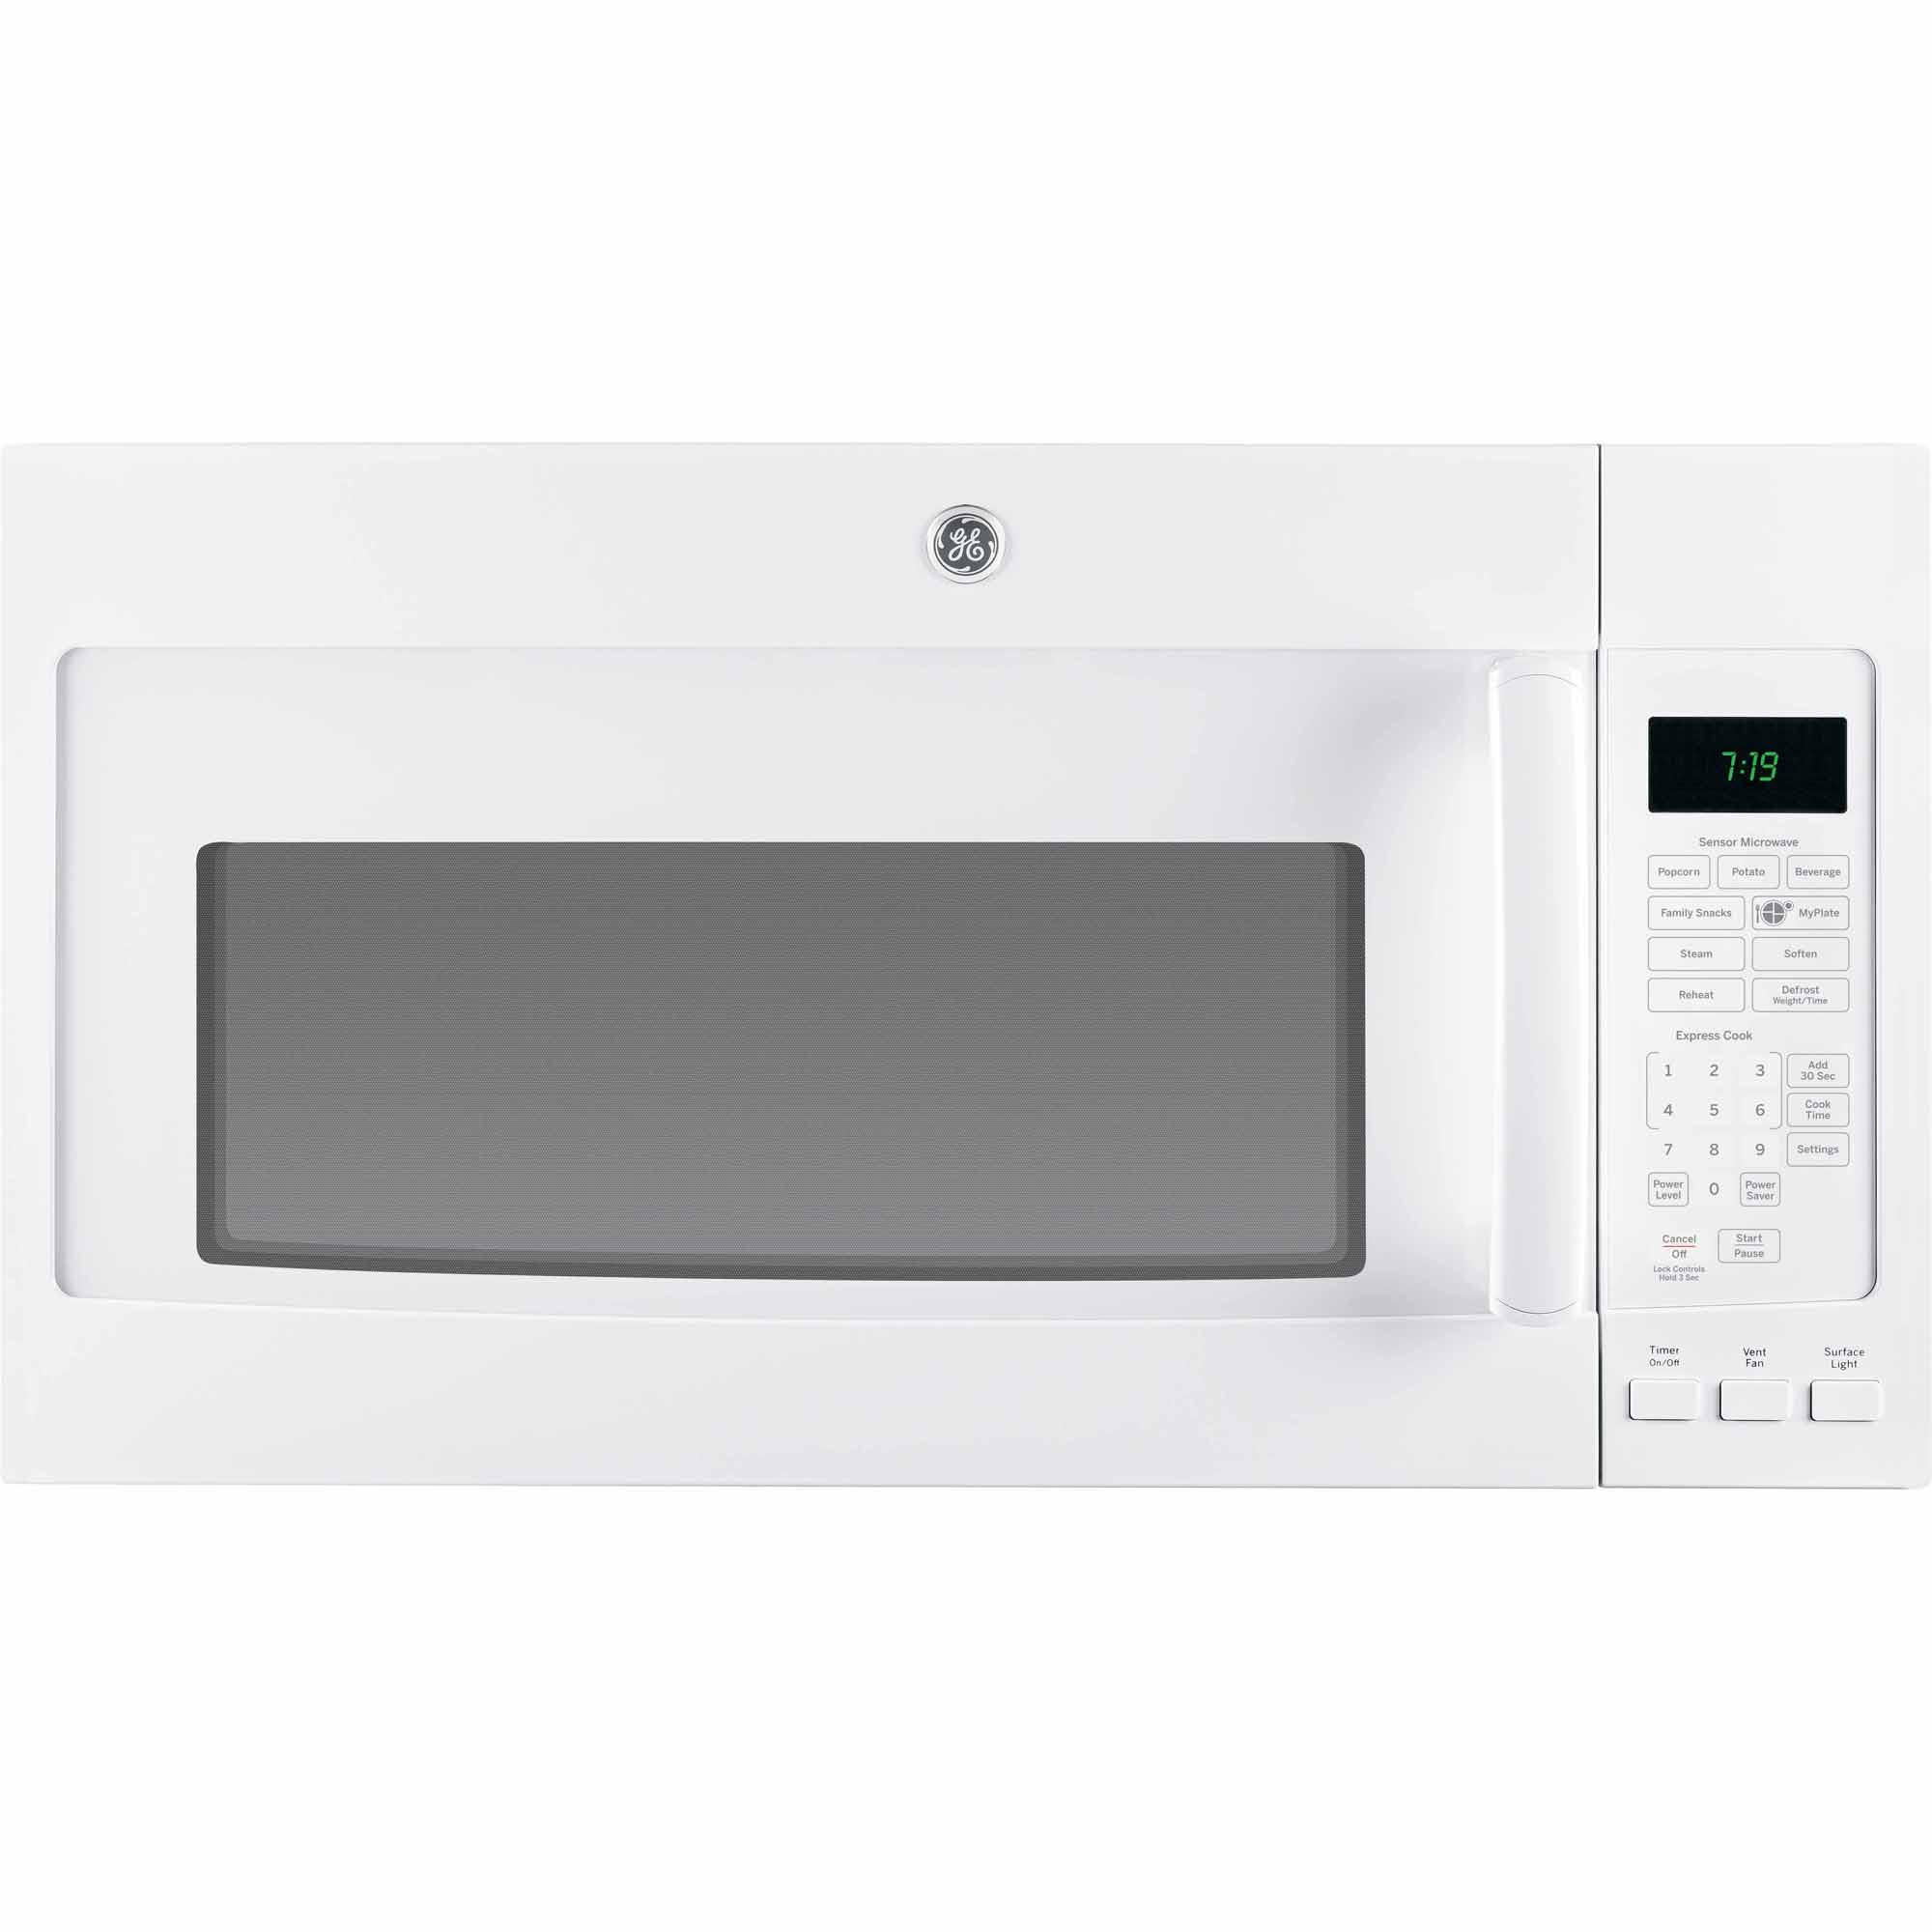 1.9 cu. ft. Over-the-Range Sensor Microwave